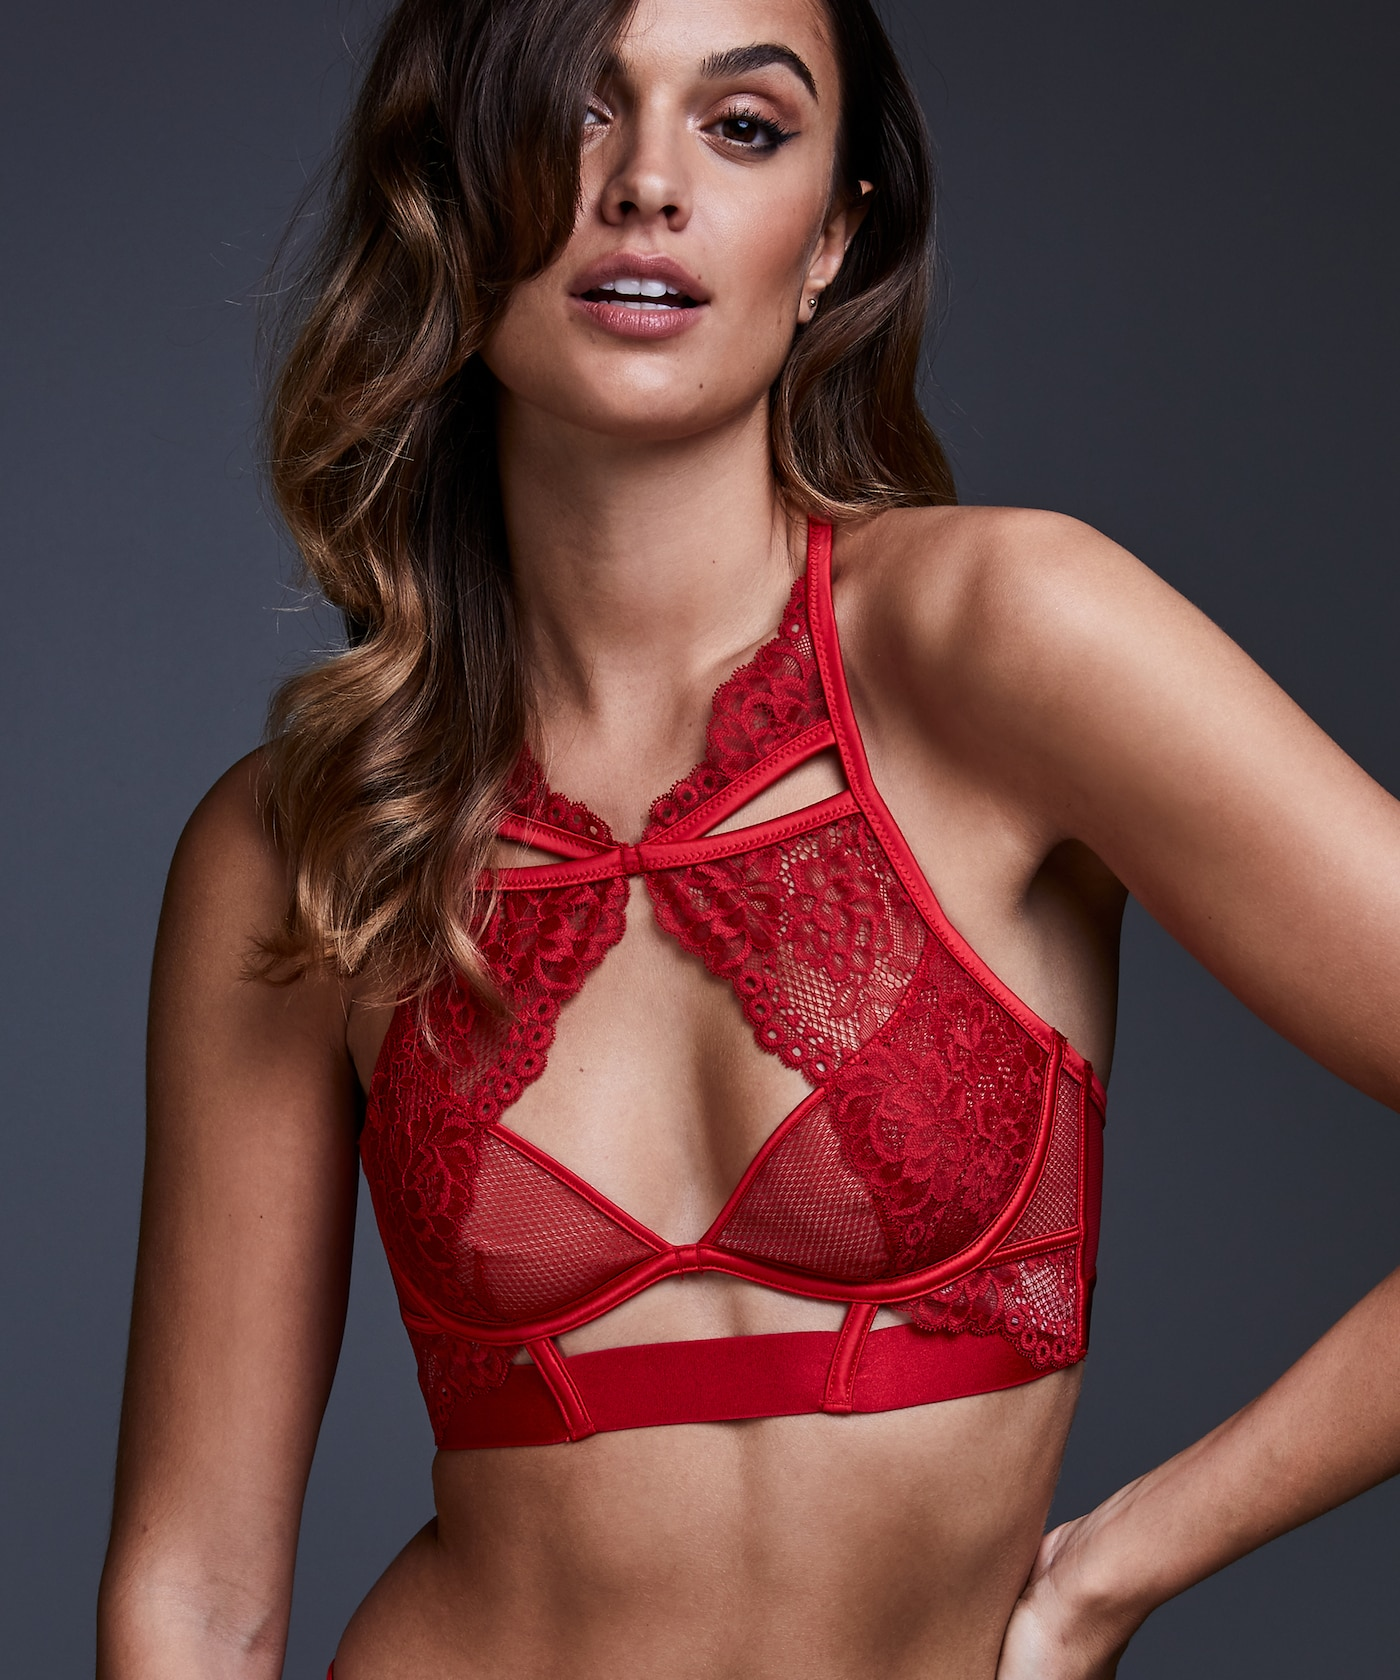 Private Collection Tomei underwired Sexy Red Black Lace Ultra Thin <font><b>Bra</b></font> <font><b>80C</b></font> Lenceria Women <font><b>Bra</b></font> Lingerie Sexy image